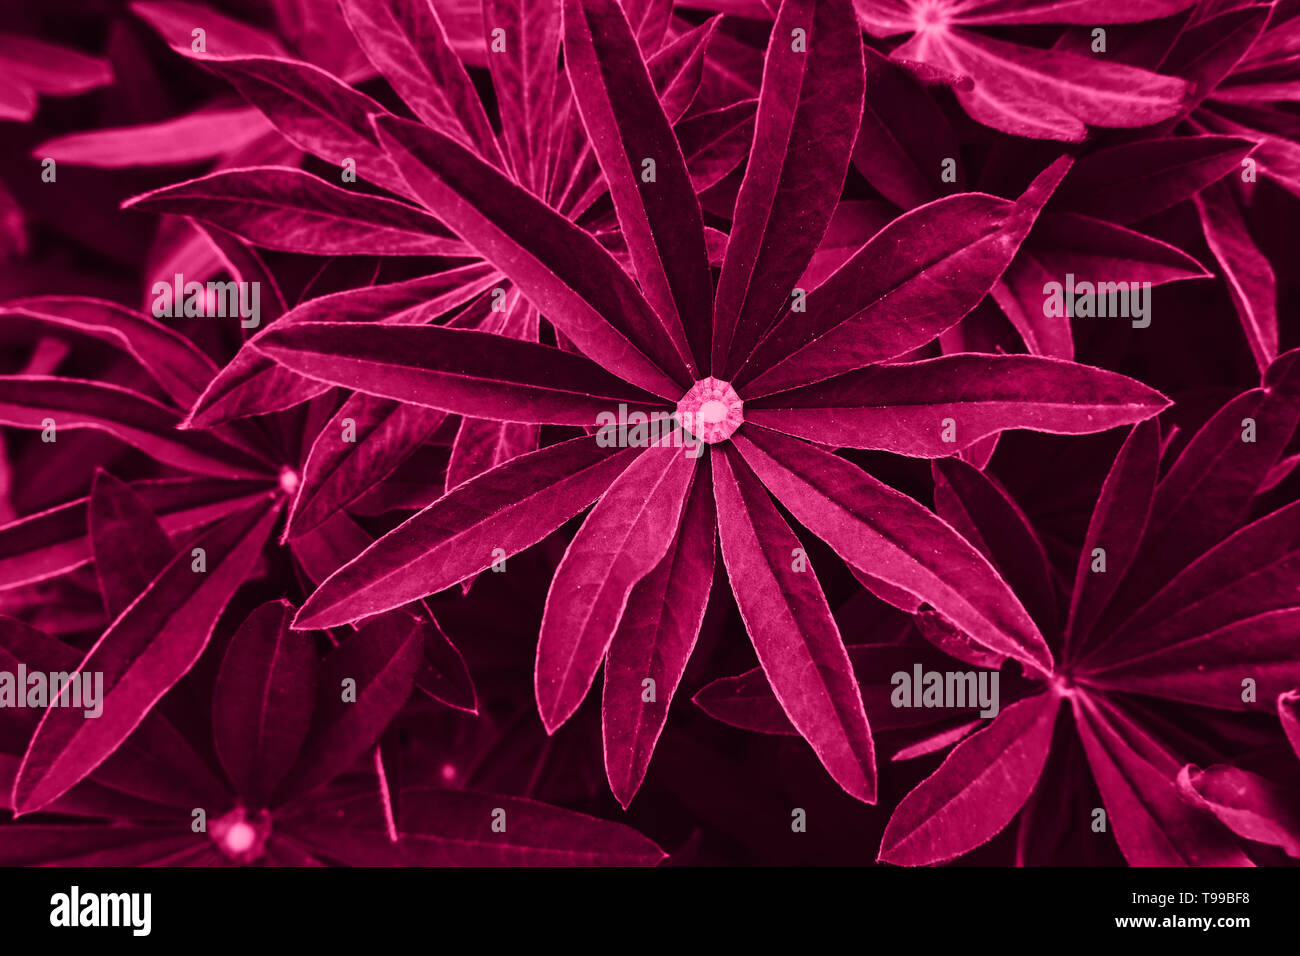 Bright magenta pink leaves top view minimalistic background. Floral backdrop concept. Foliage plant twigs texture. Flower petals close up. Floristry hobby. Web banner, greeting card idea - Stock Image